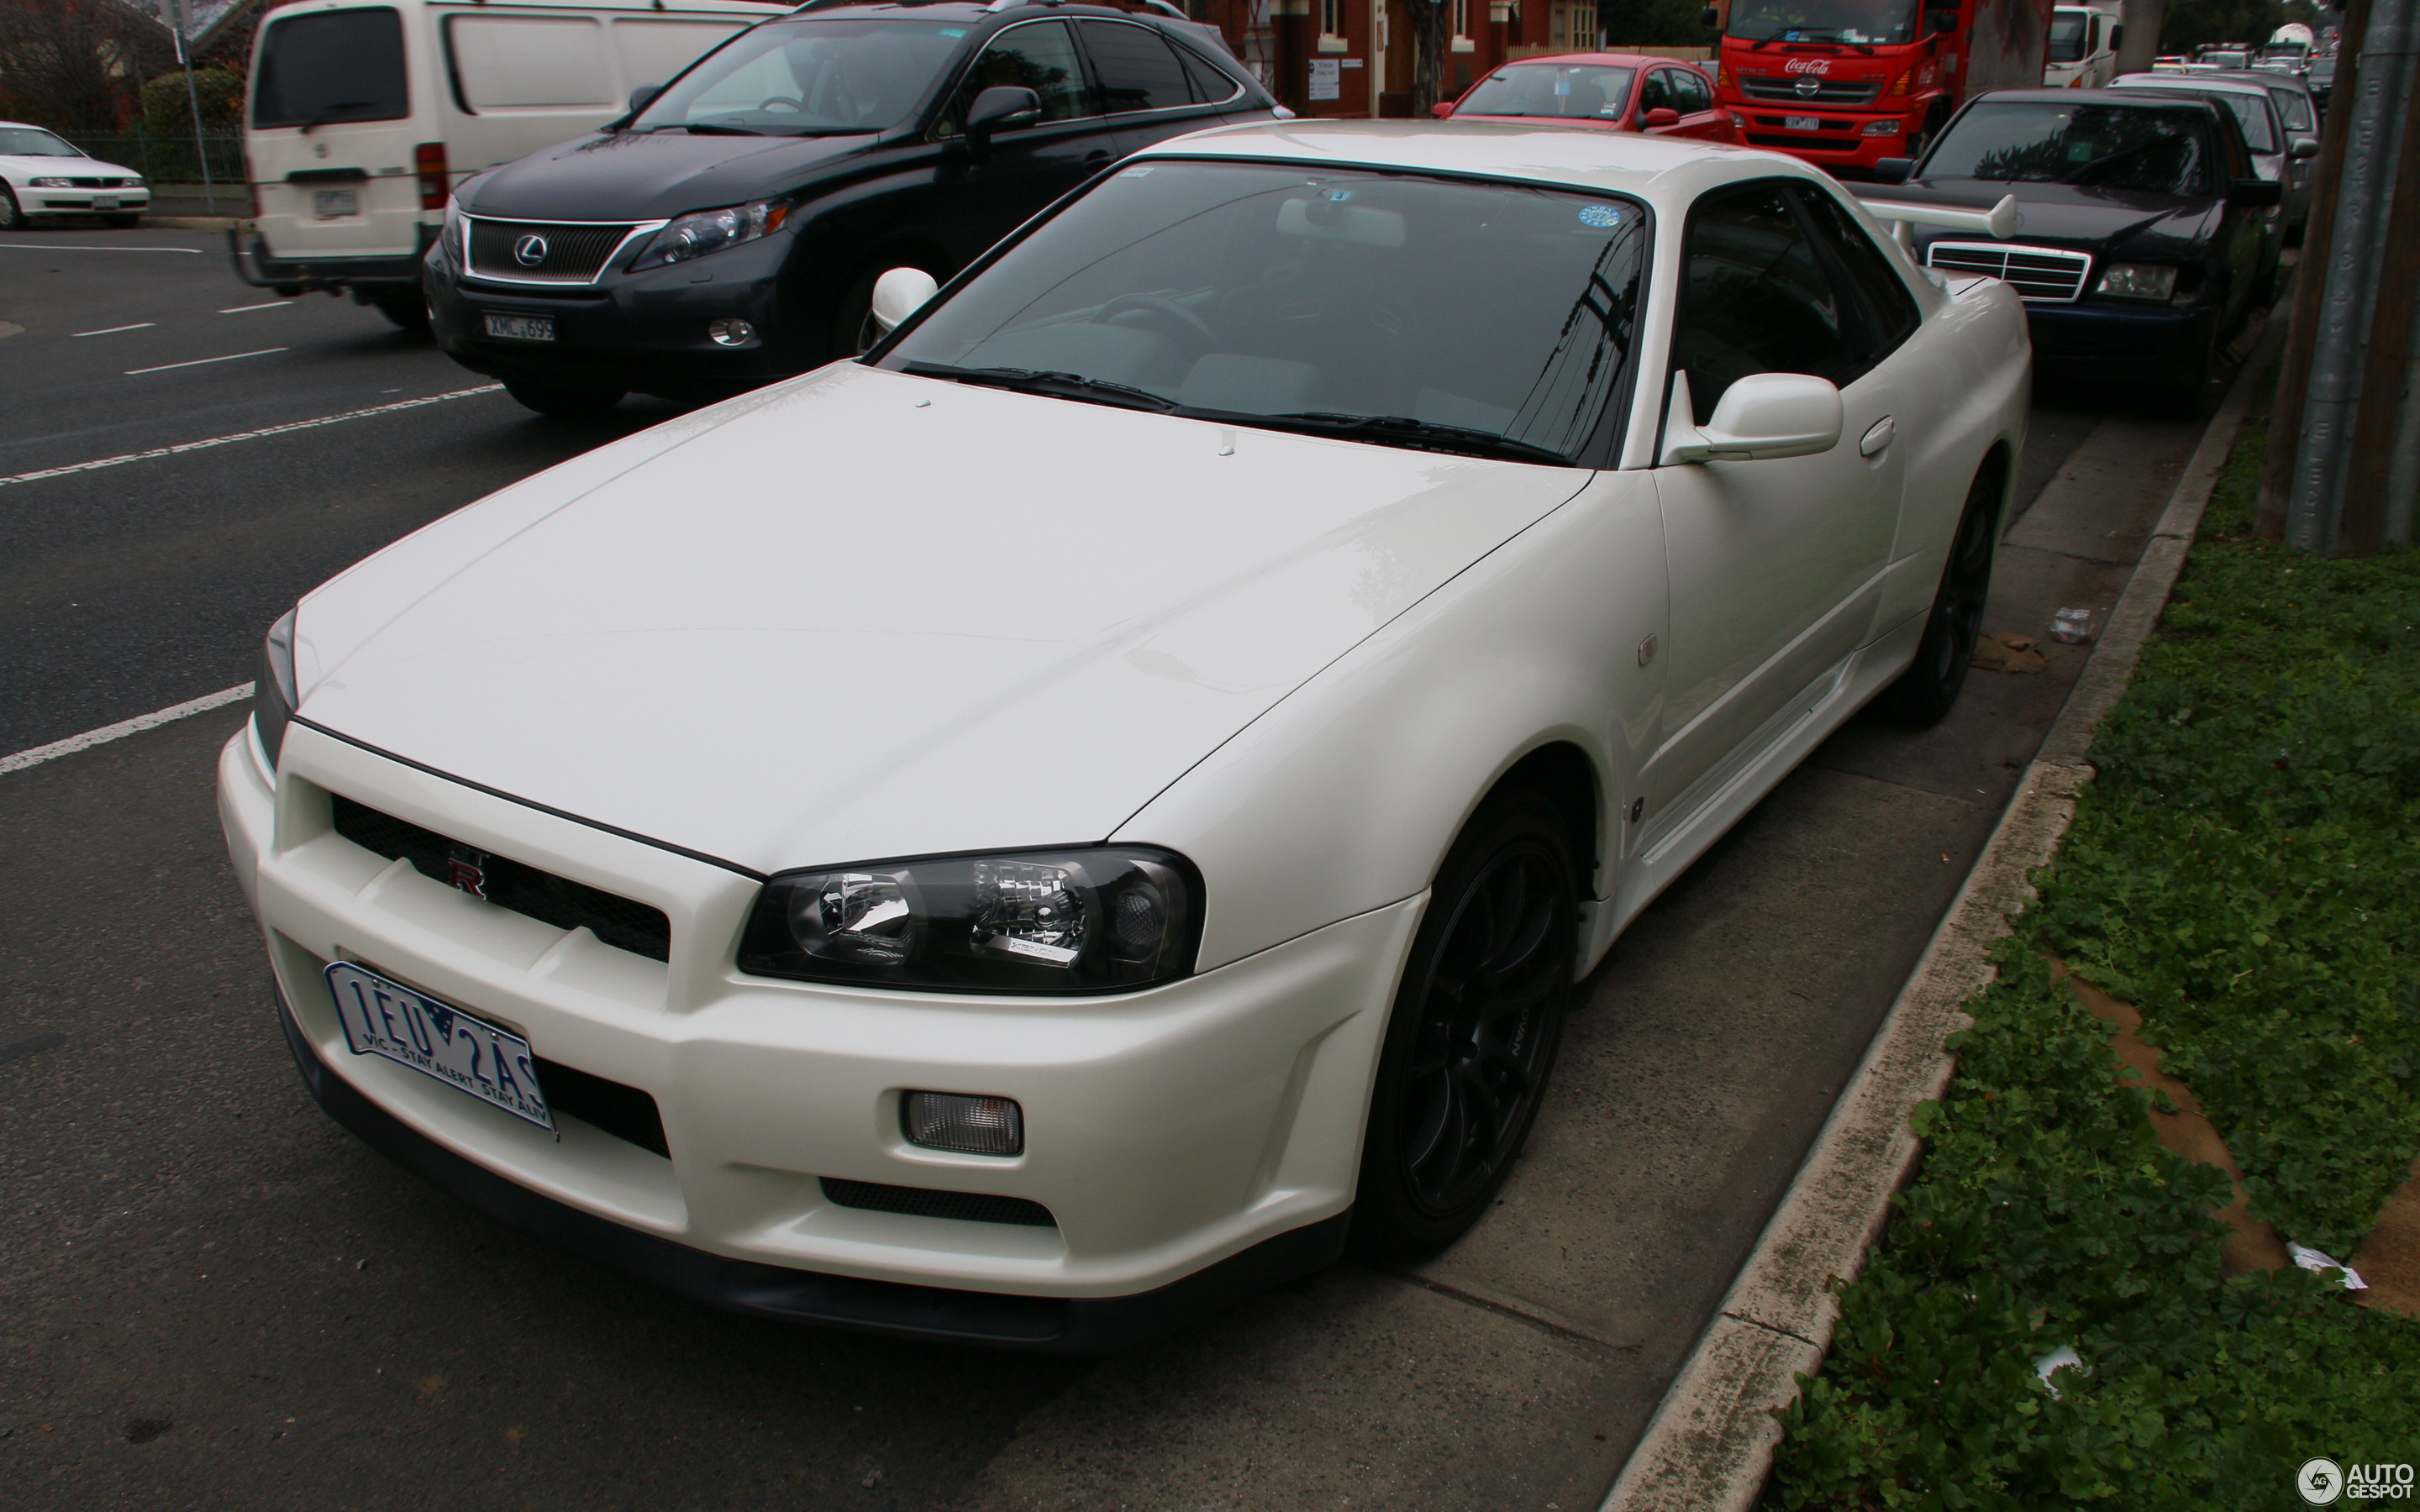 nissan skyline r34 gt r 12 juni 2015 autogespot. Black Bedroom Furniture Sets. Home Design Ideas